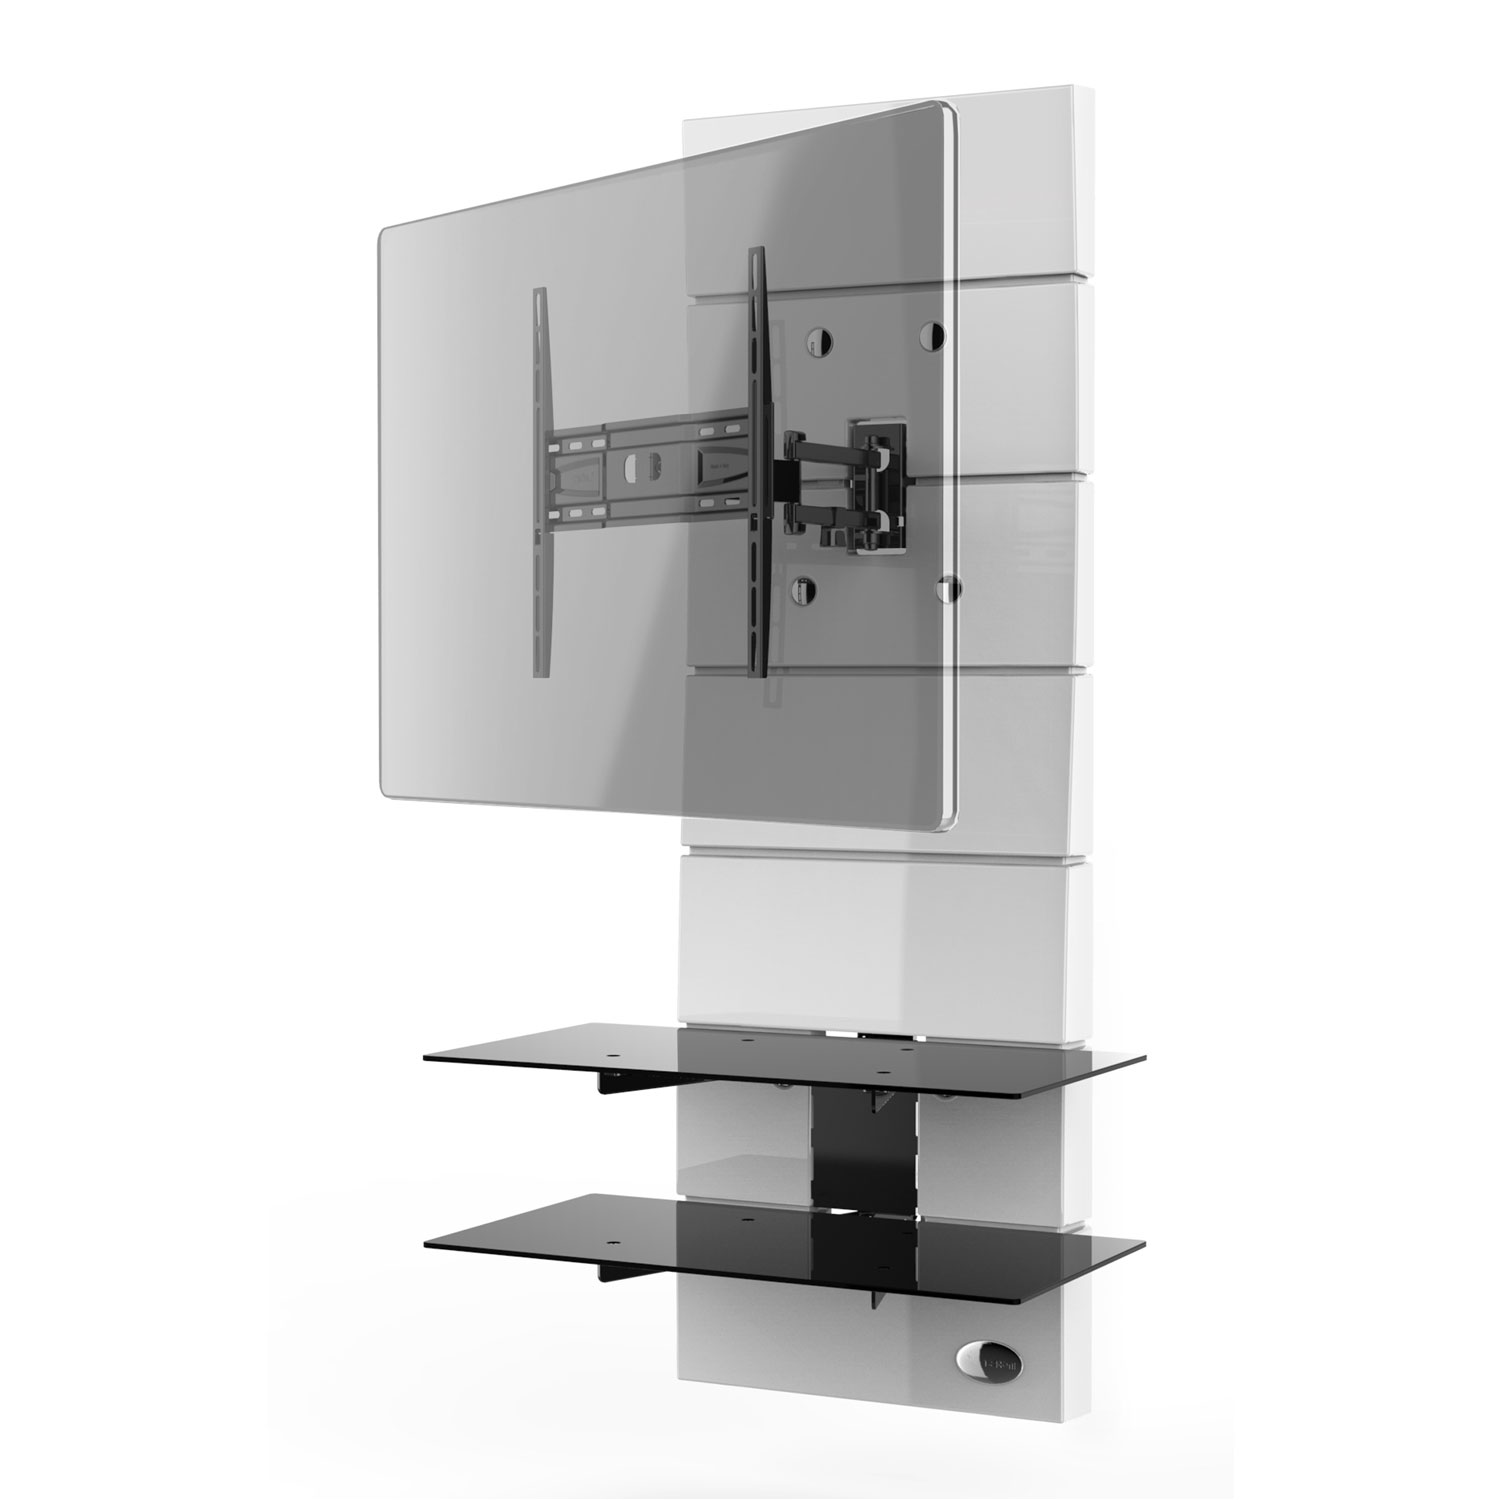 Table Tv Avec Support Maison Design Wiblia Com # Meuble Tv Ecran Plat Retractable